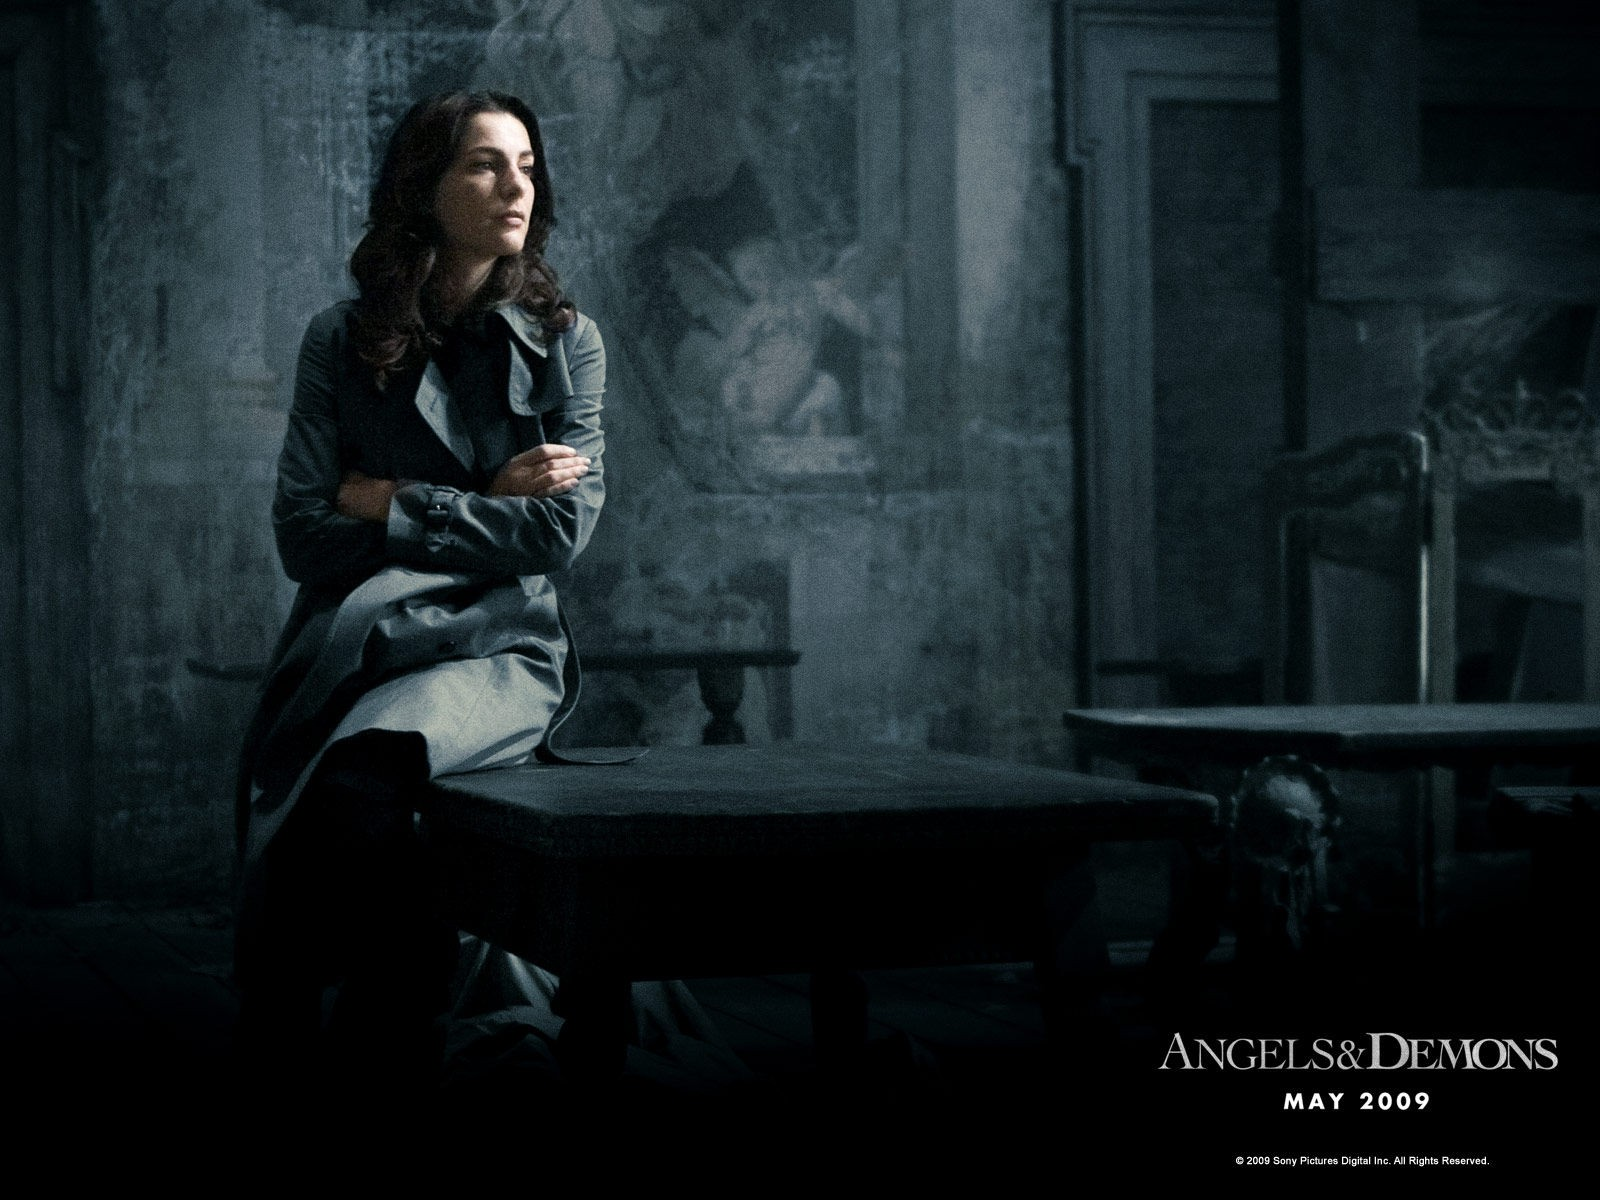 Wallpaper di Ayelet Zurer nel film 'Angeli e Demoni'